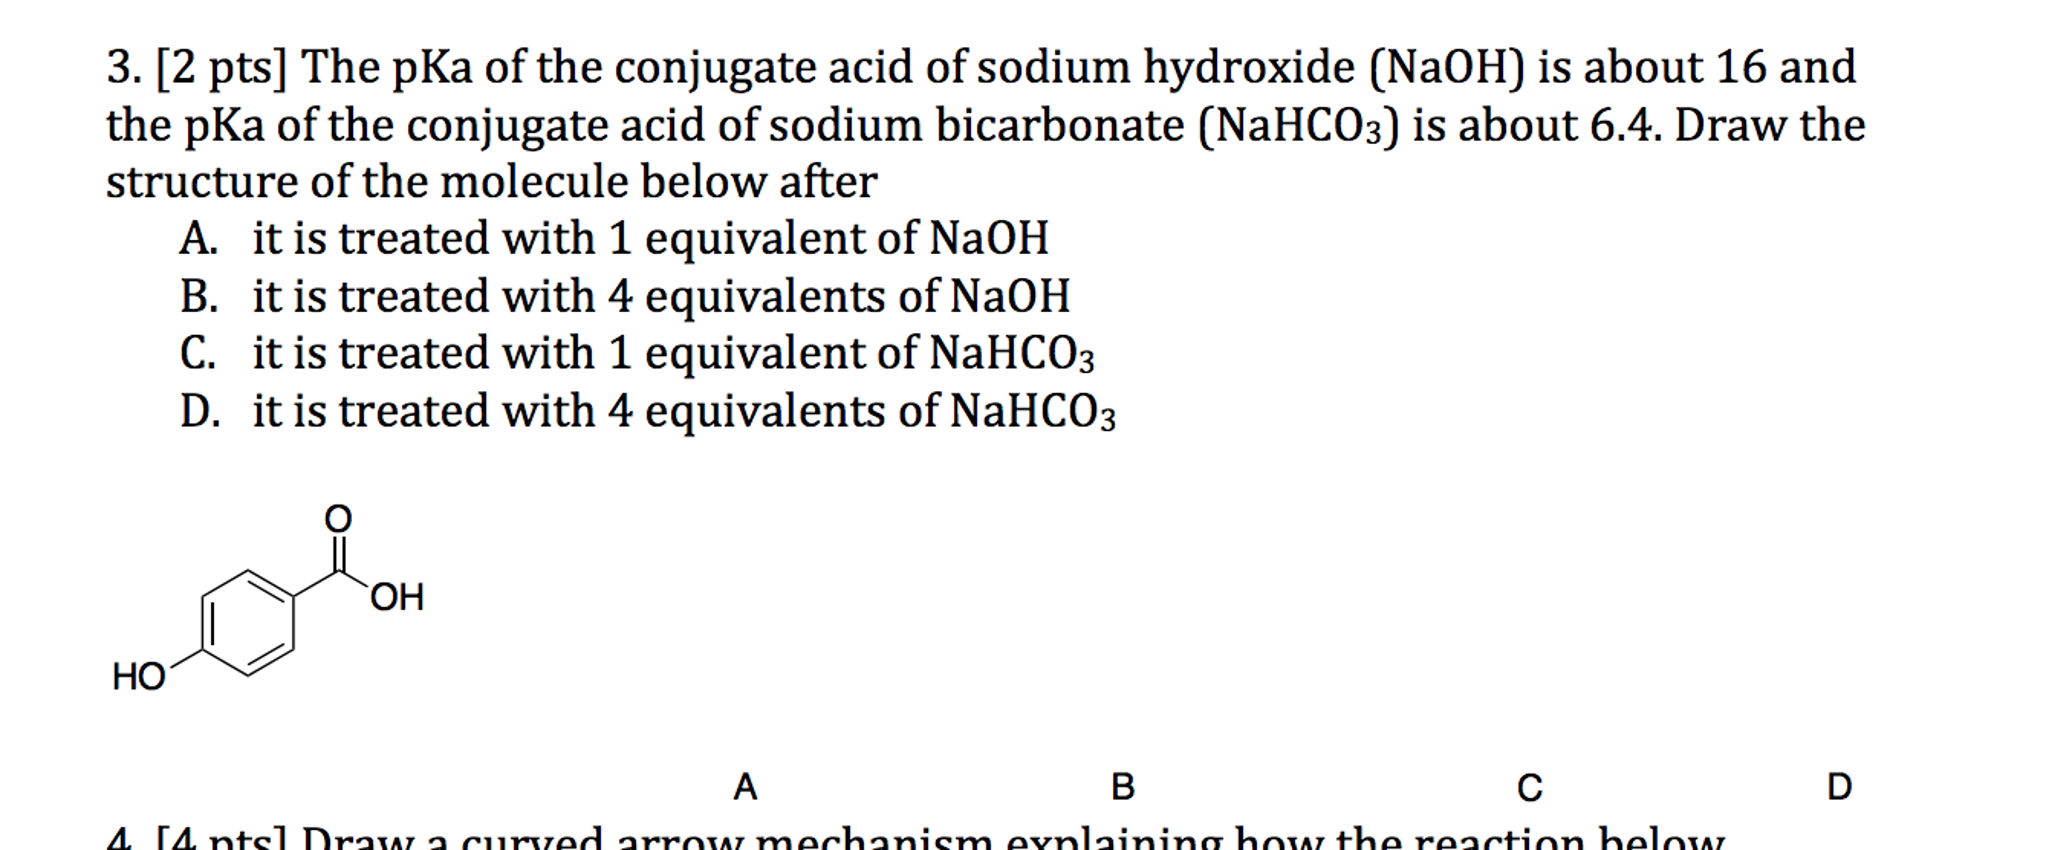 preperation and standardization of sodium hydroxide 50% naoh contains 50%w/w sodium hydroxide and for 50g of the compound is containd in every 100ml of its solution sodium hydroxide are made as solid deliquescence pellets deliquescence substances are chemical compound that tend to absorb so much water from the atmosphere that they dissolve in it to form an aqueous solution of the compound.